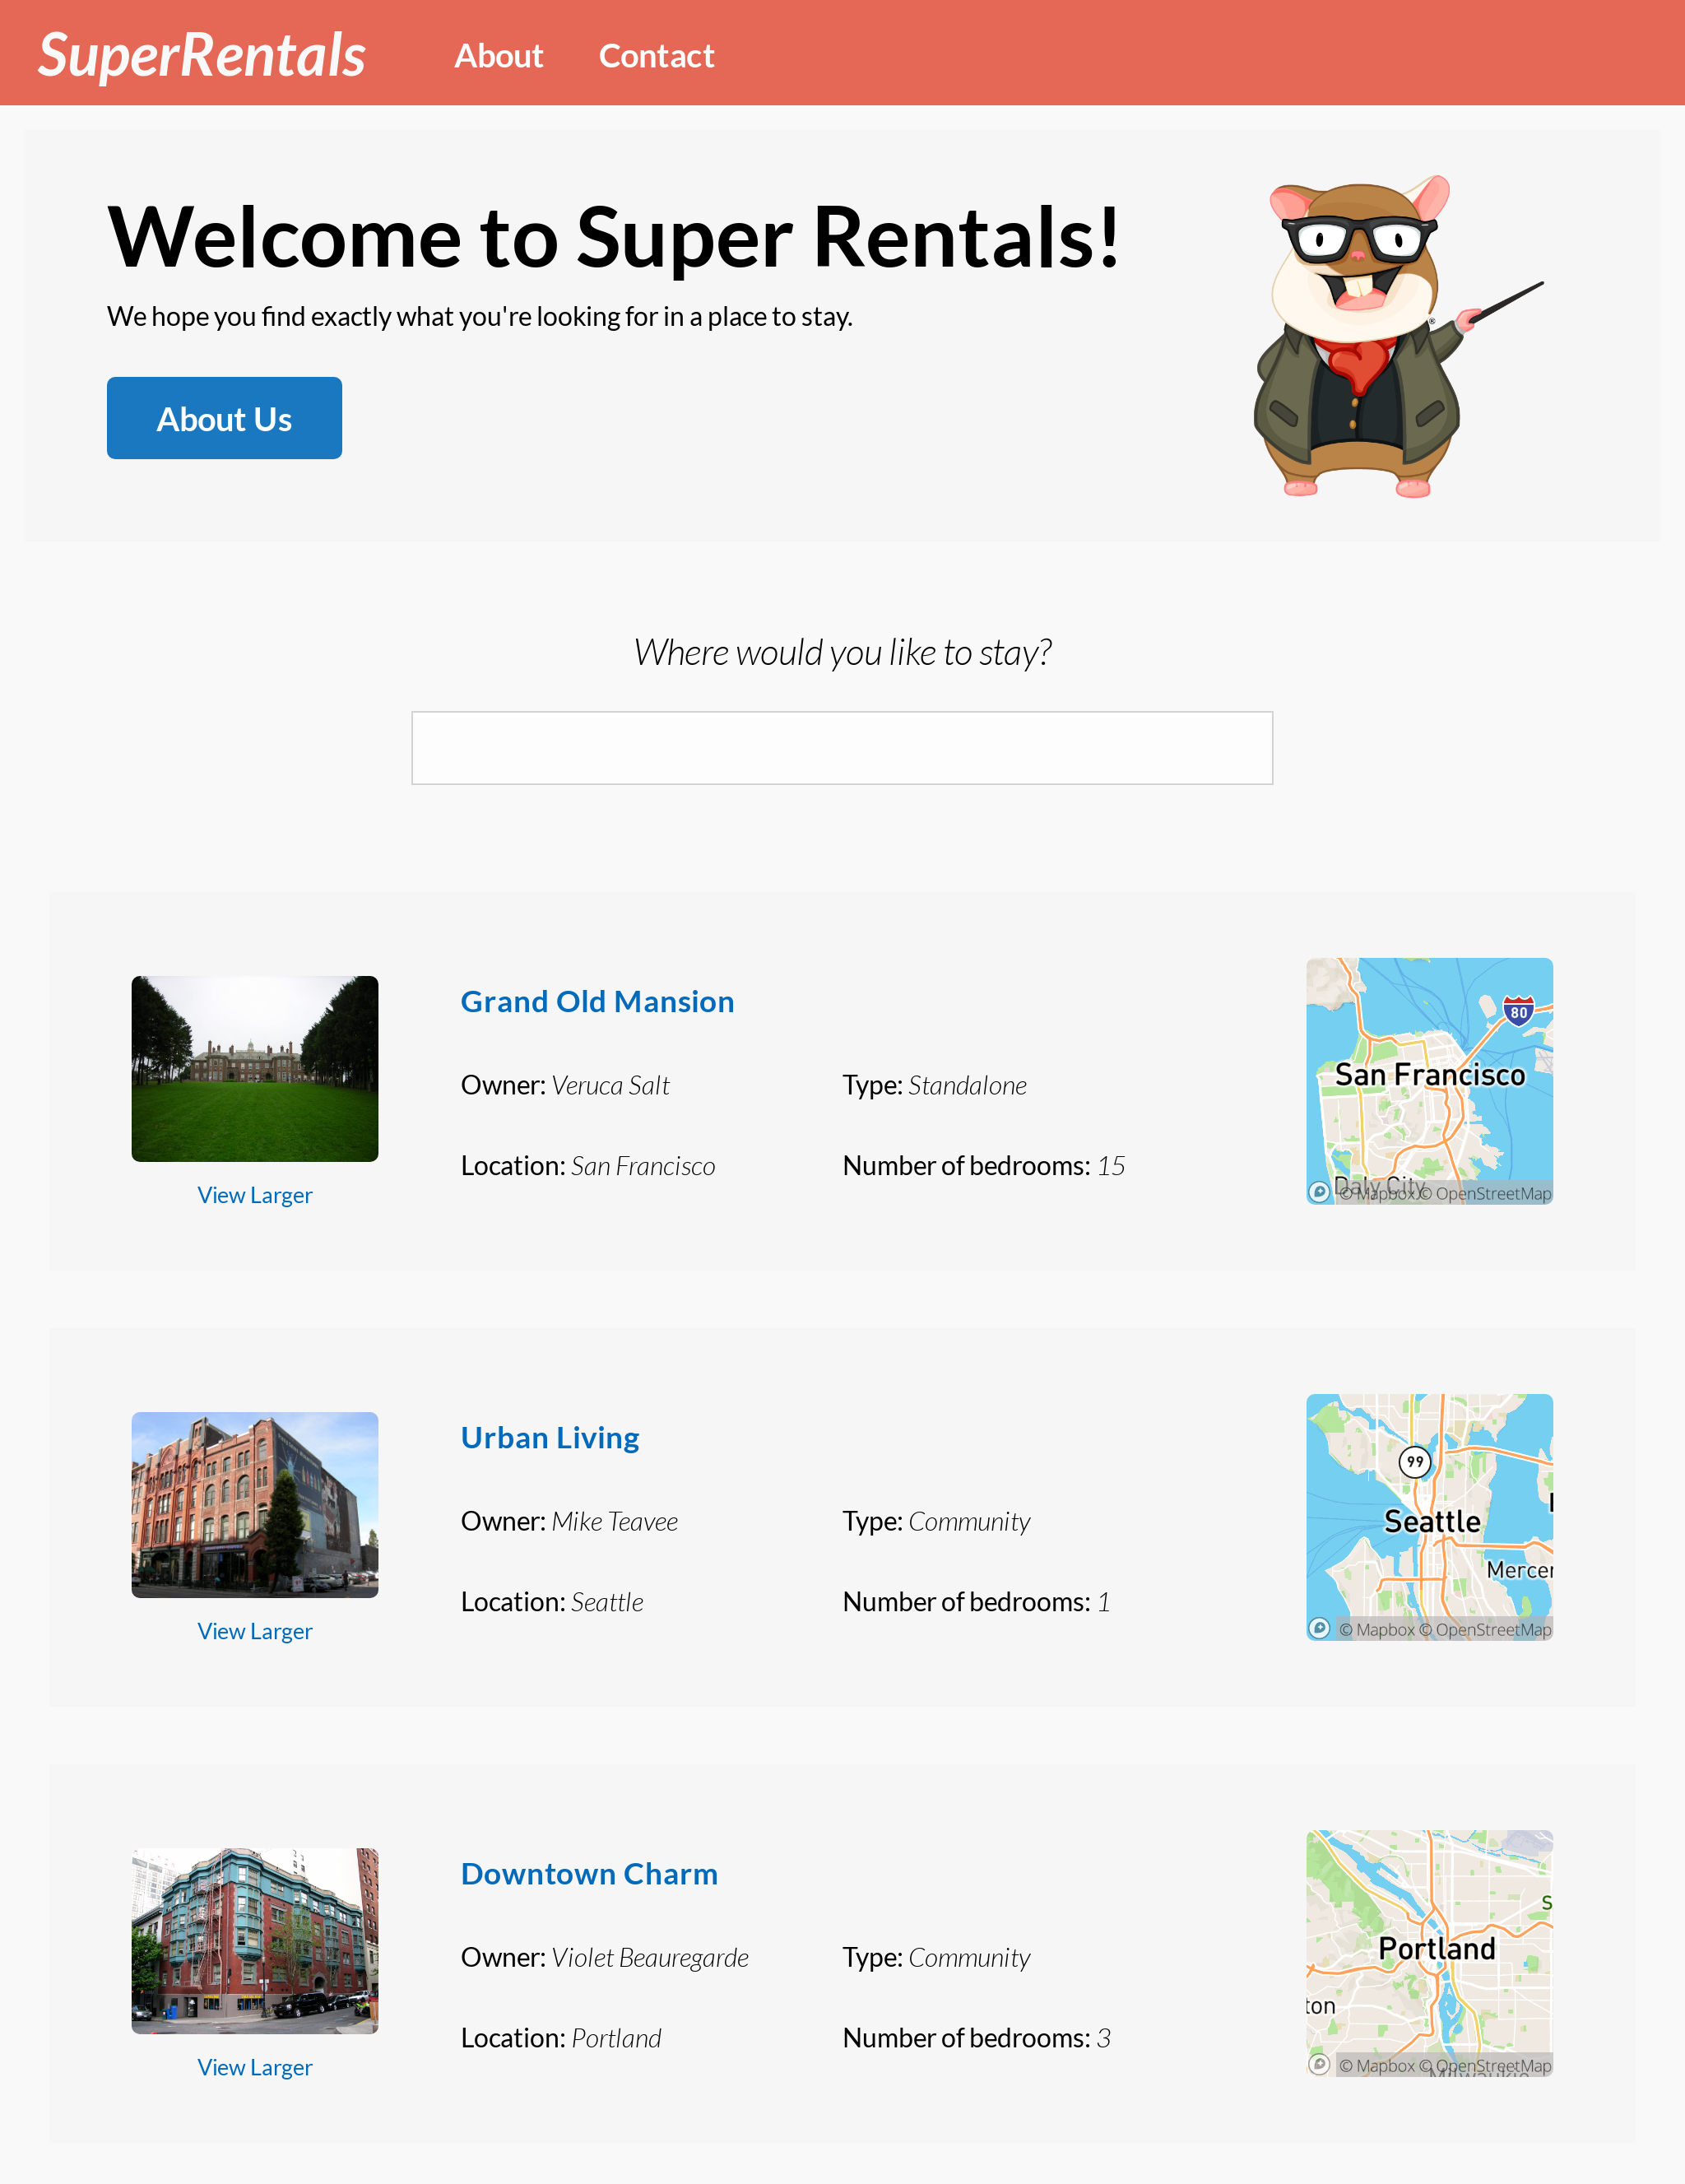 The finished Super Rentals app